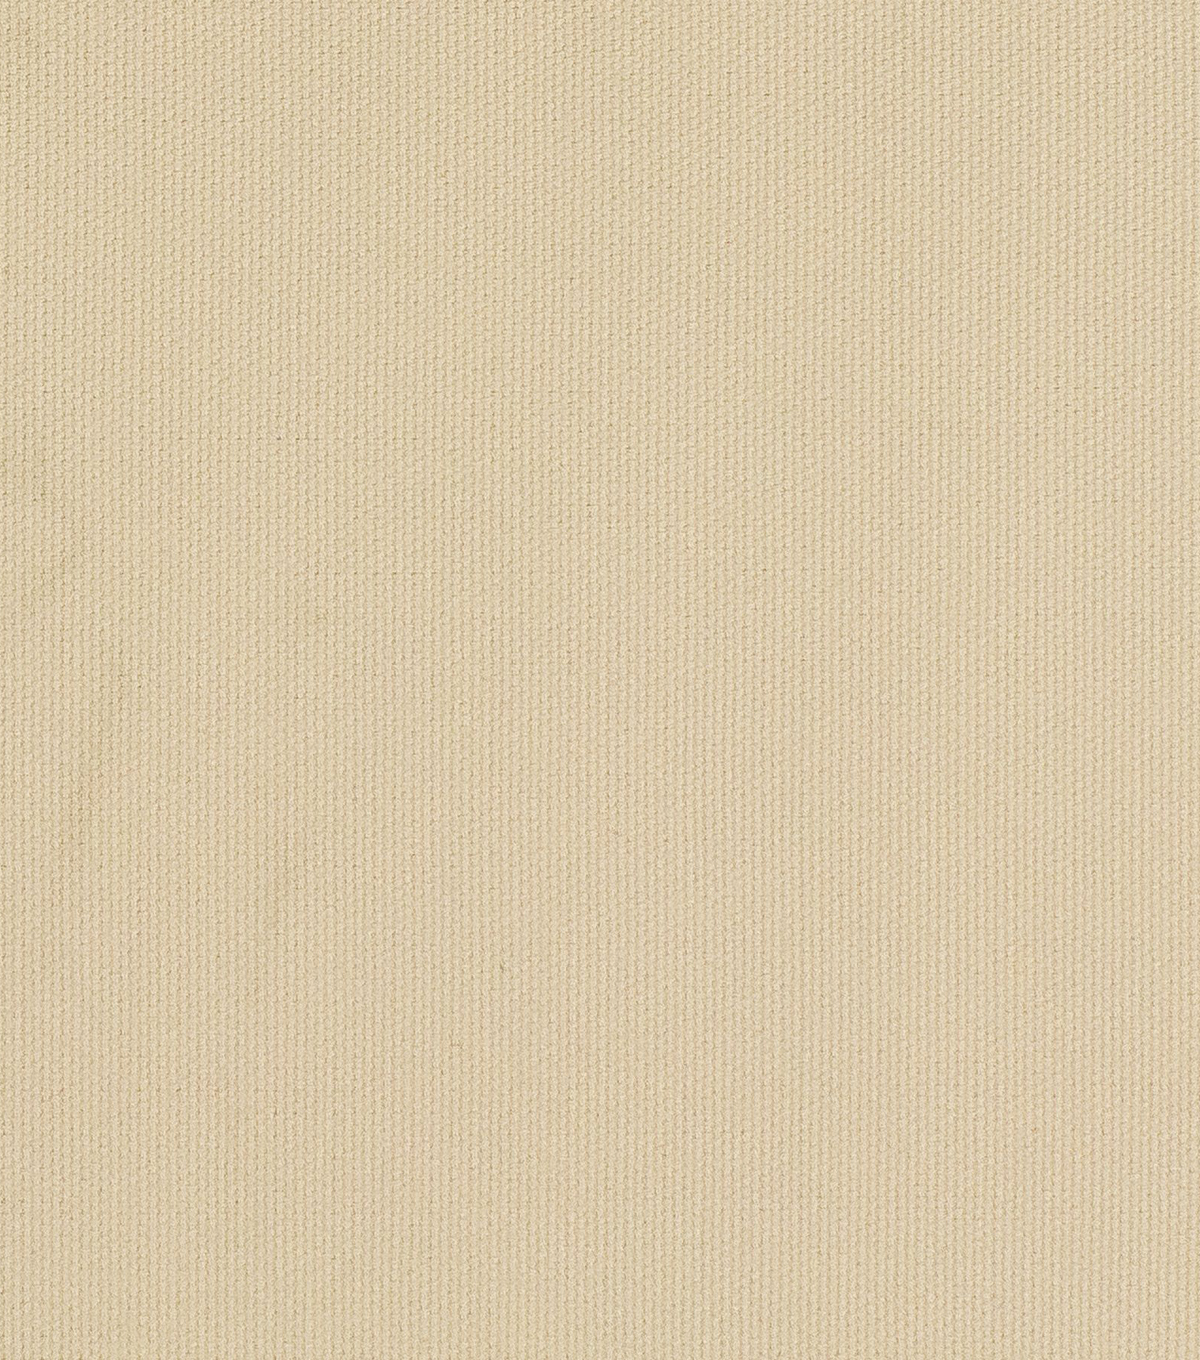 Home Decor 8\u0022x8\u0022 Fabric Swatch-Elite Orion Champagne